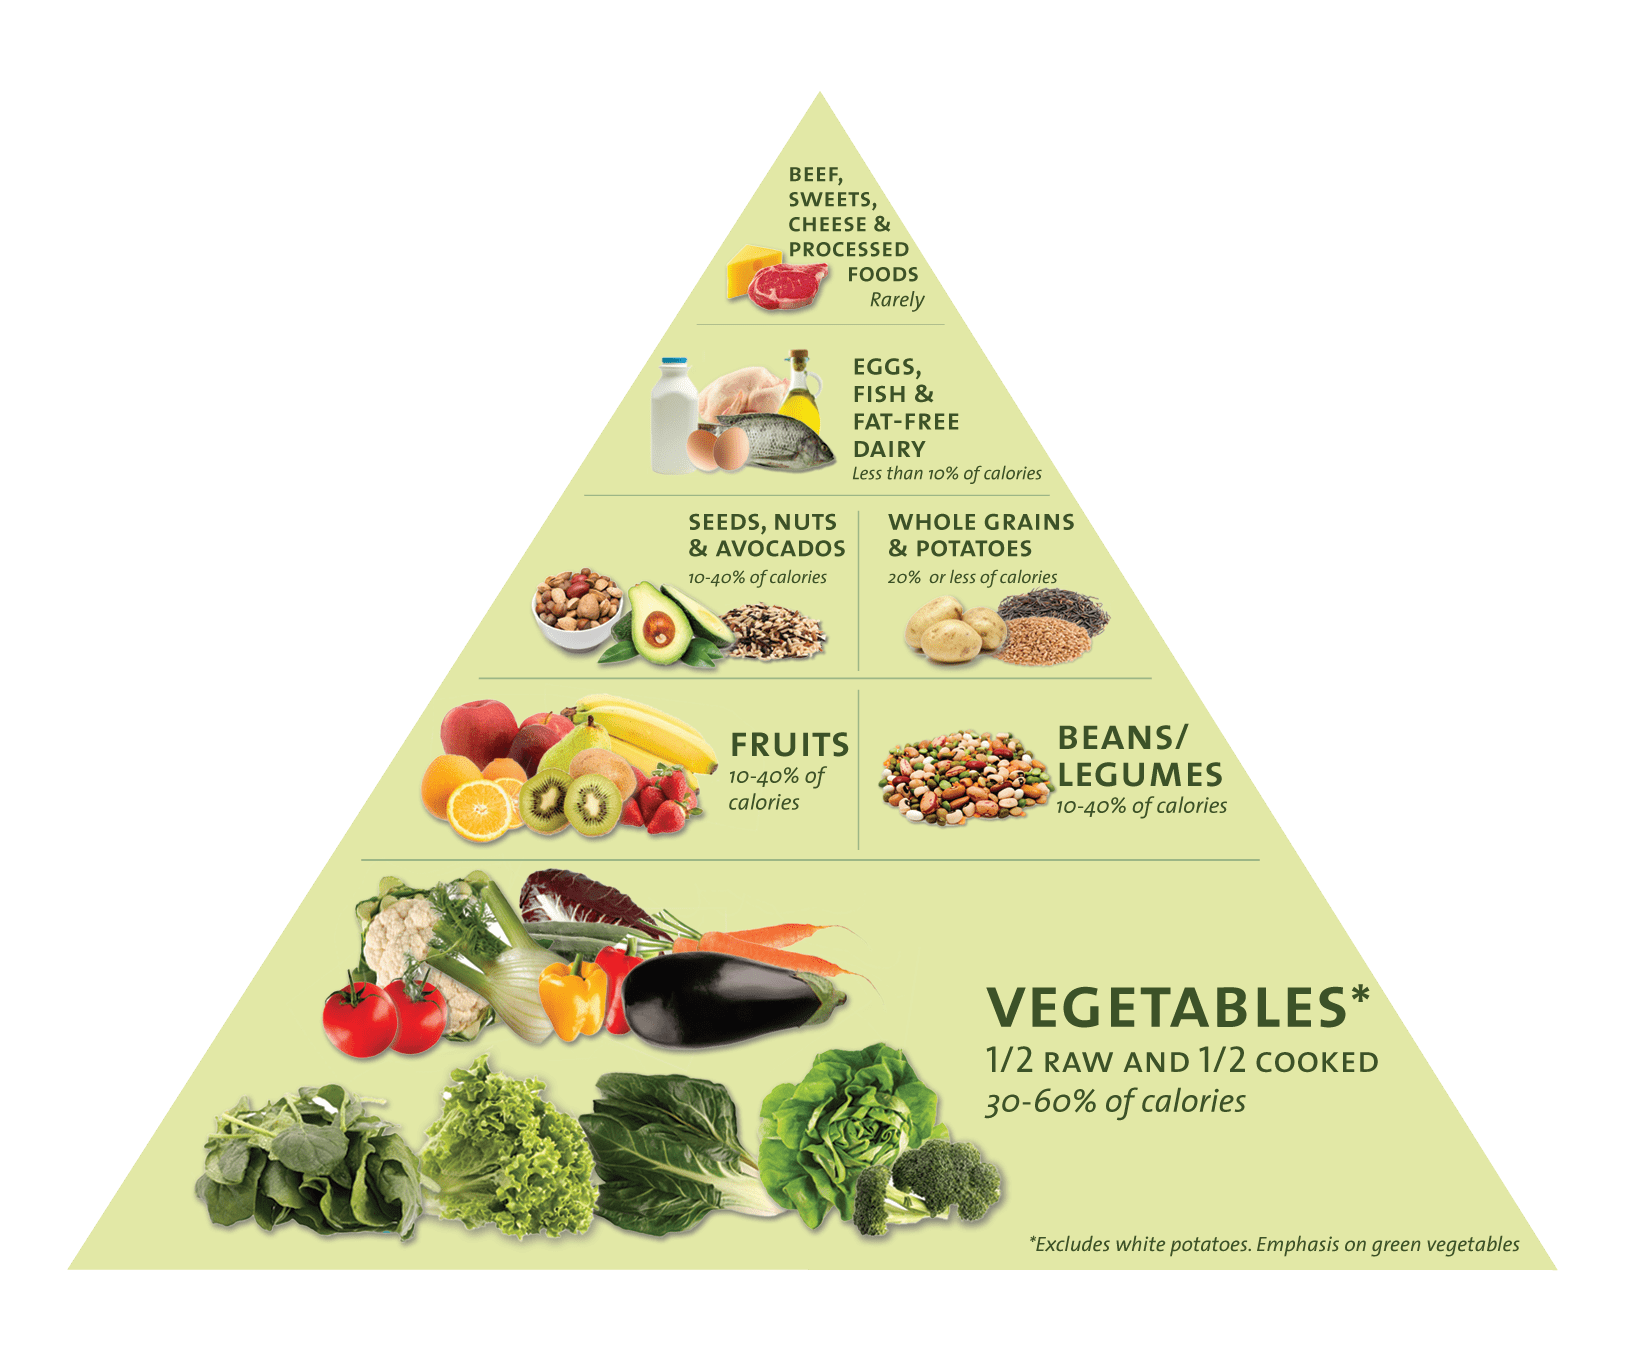 new food pyramid diagram sets in maths venn diagrams nutrition 101 the basics of healthy eating free class